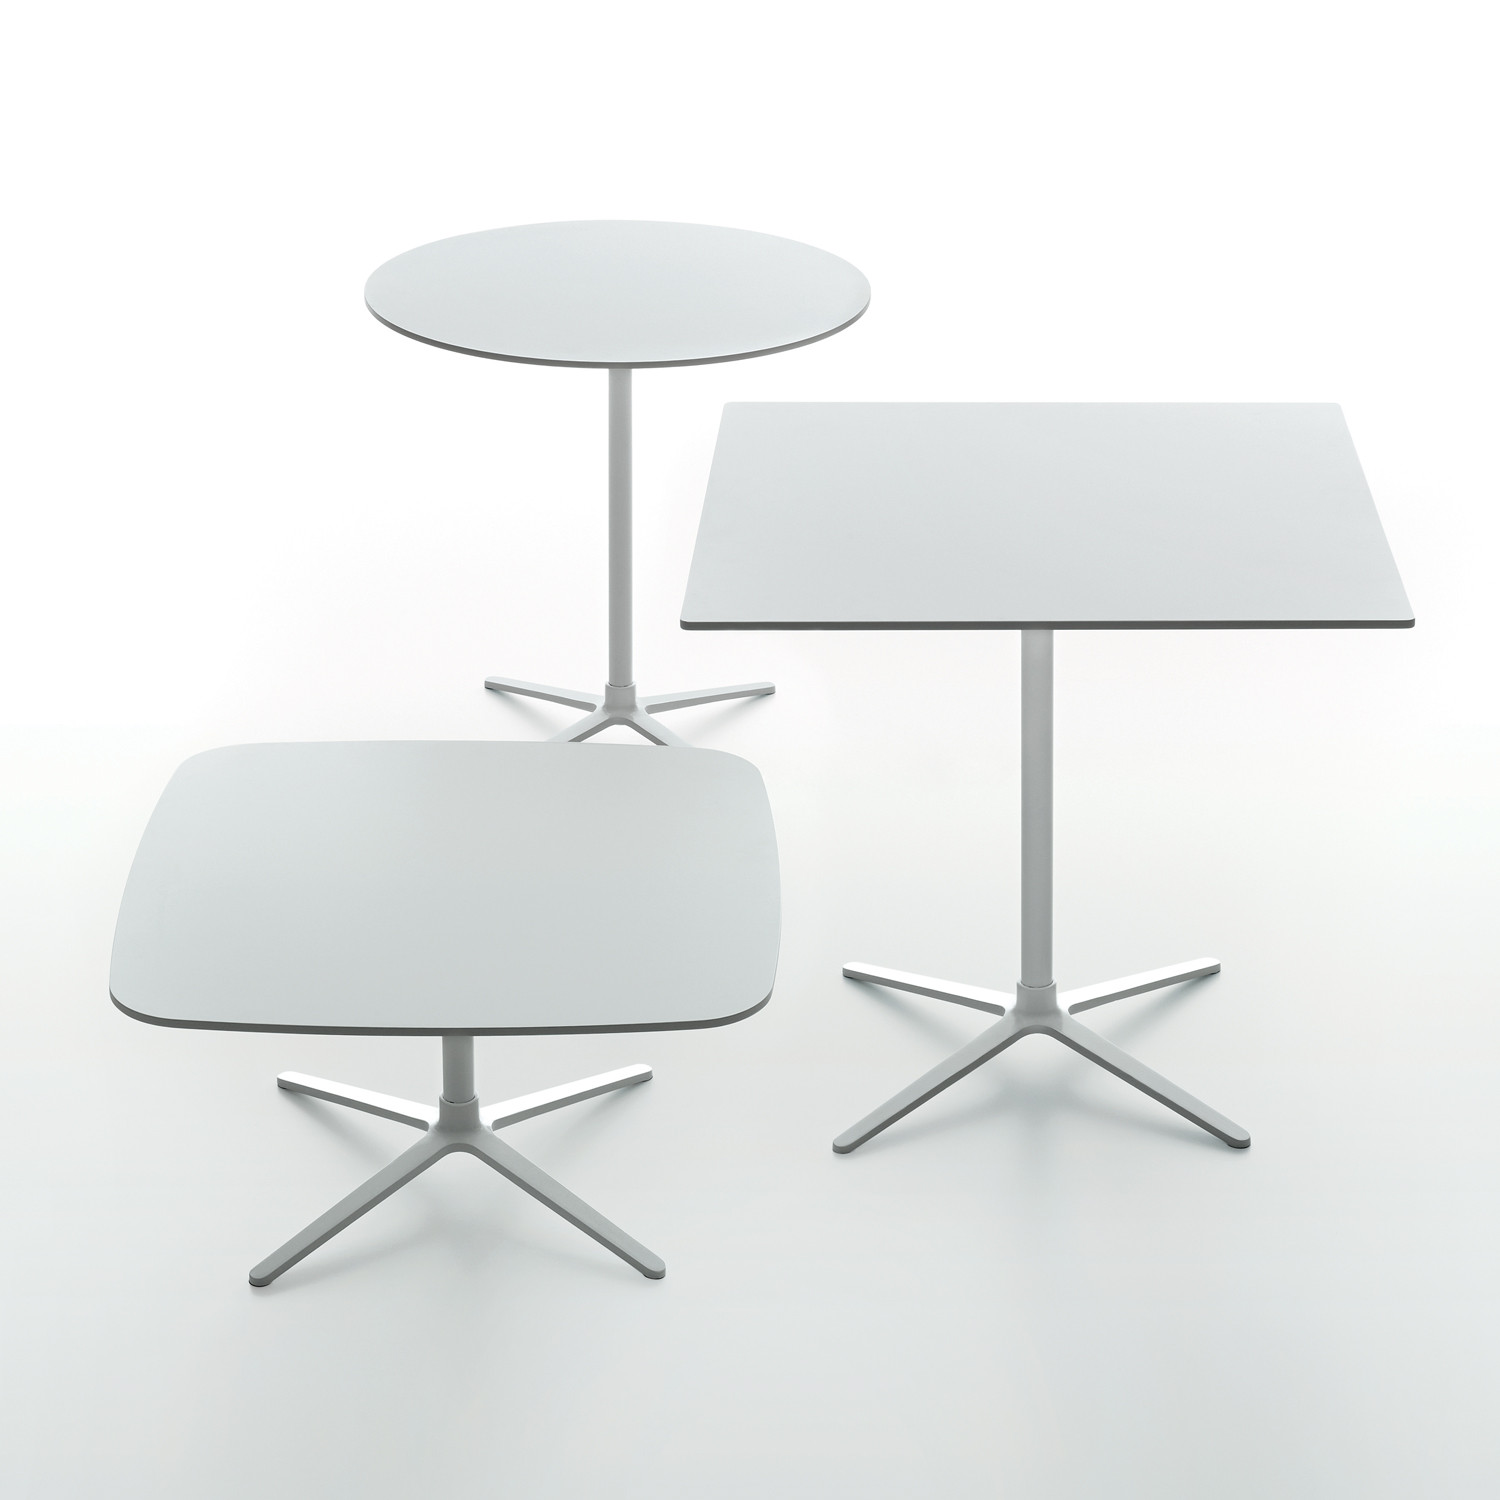 Plato Tables Range